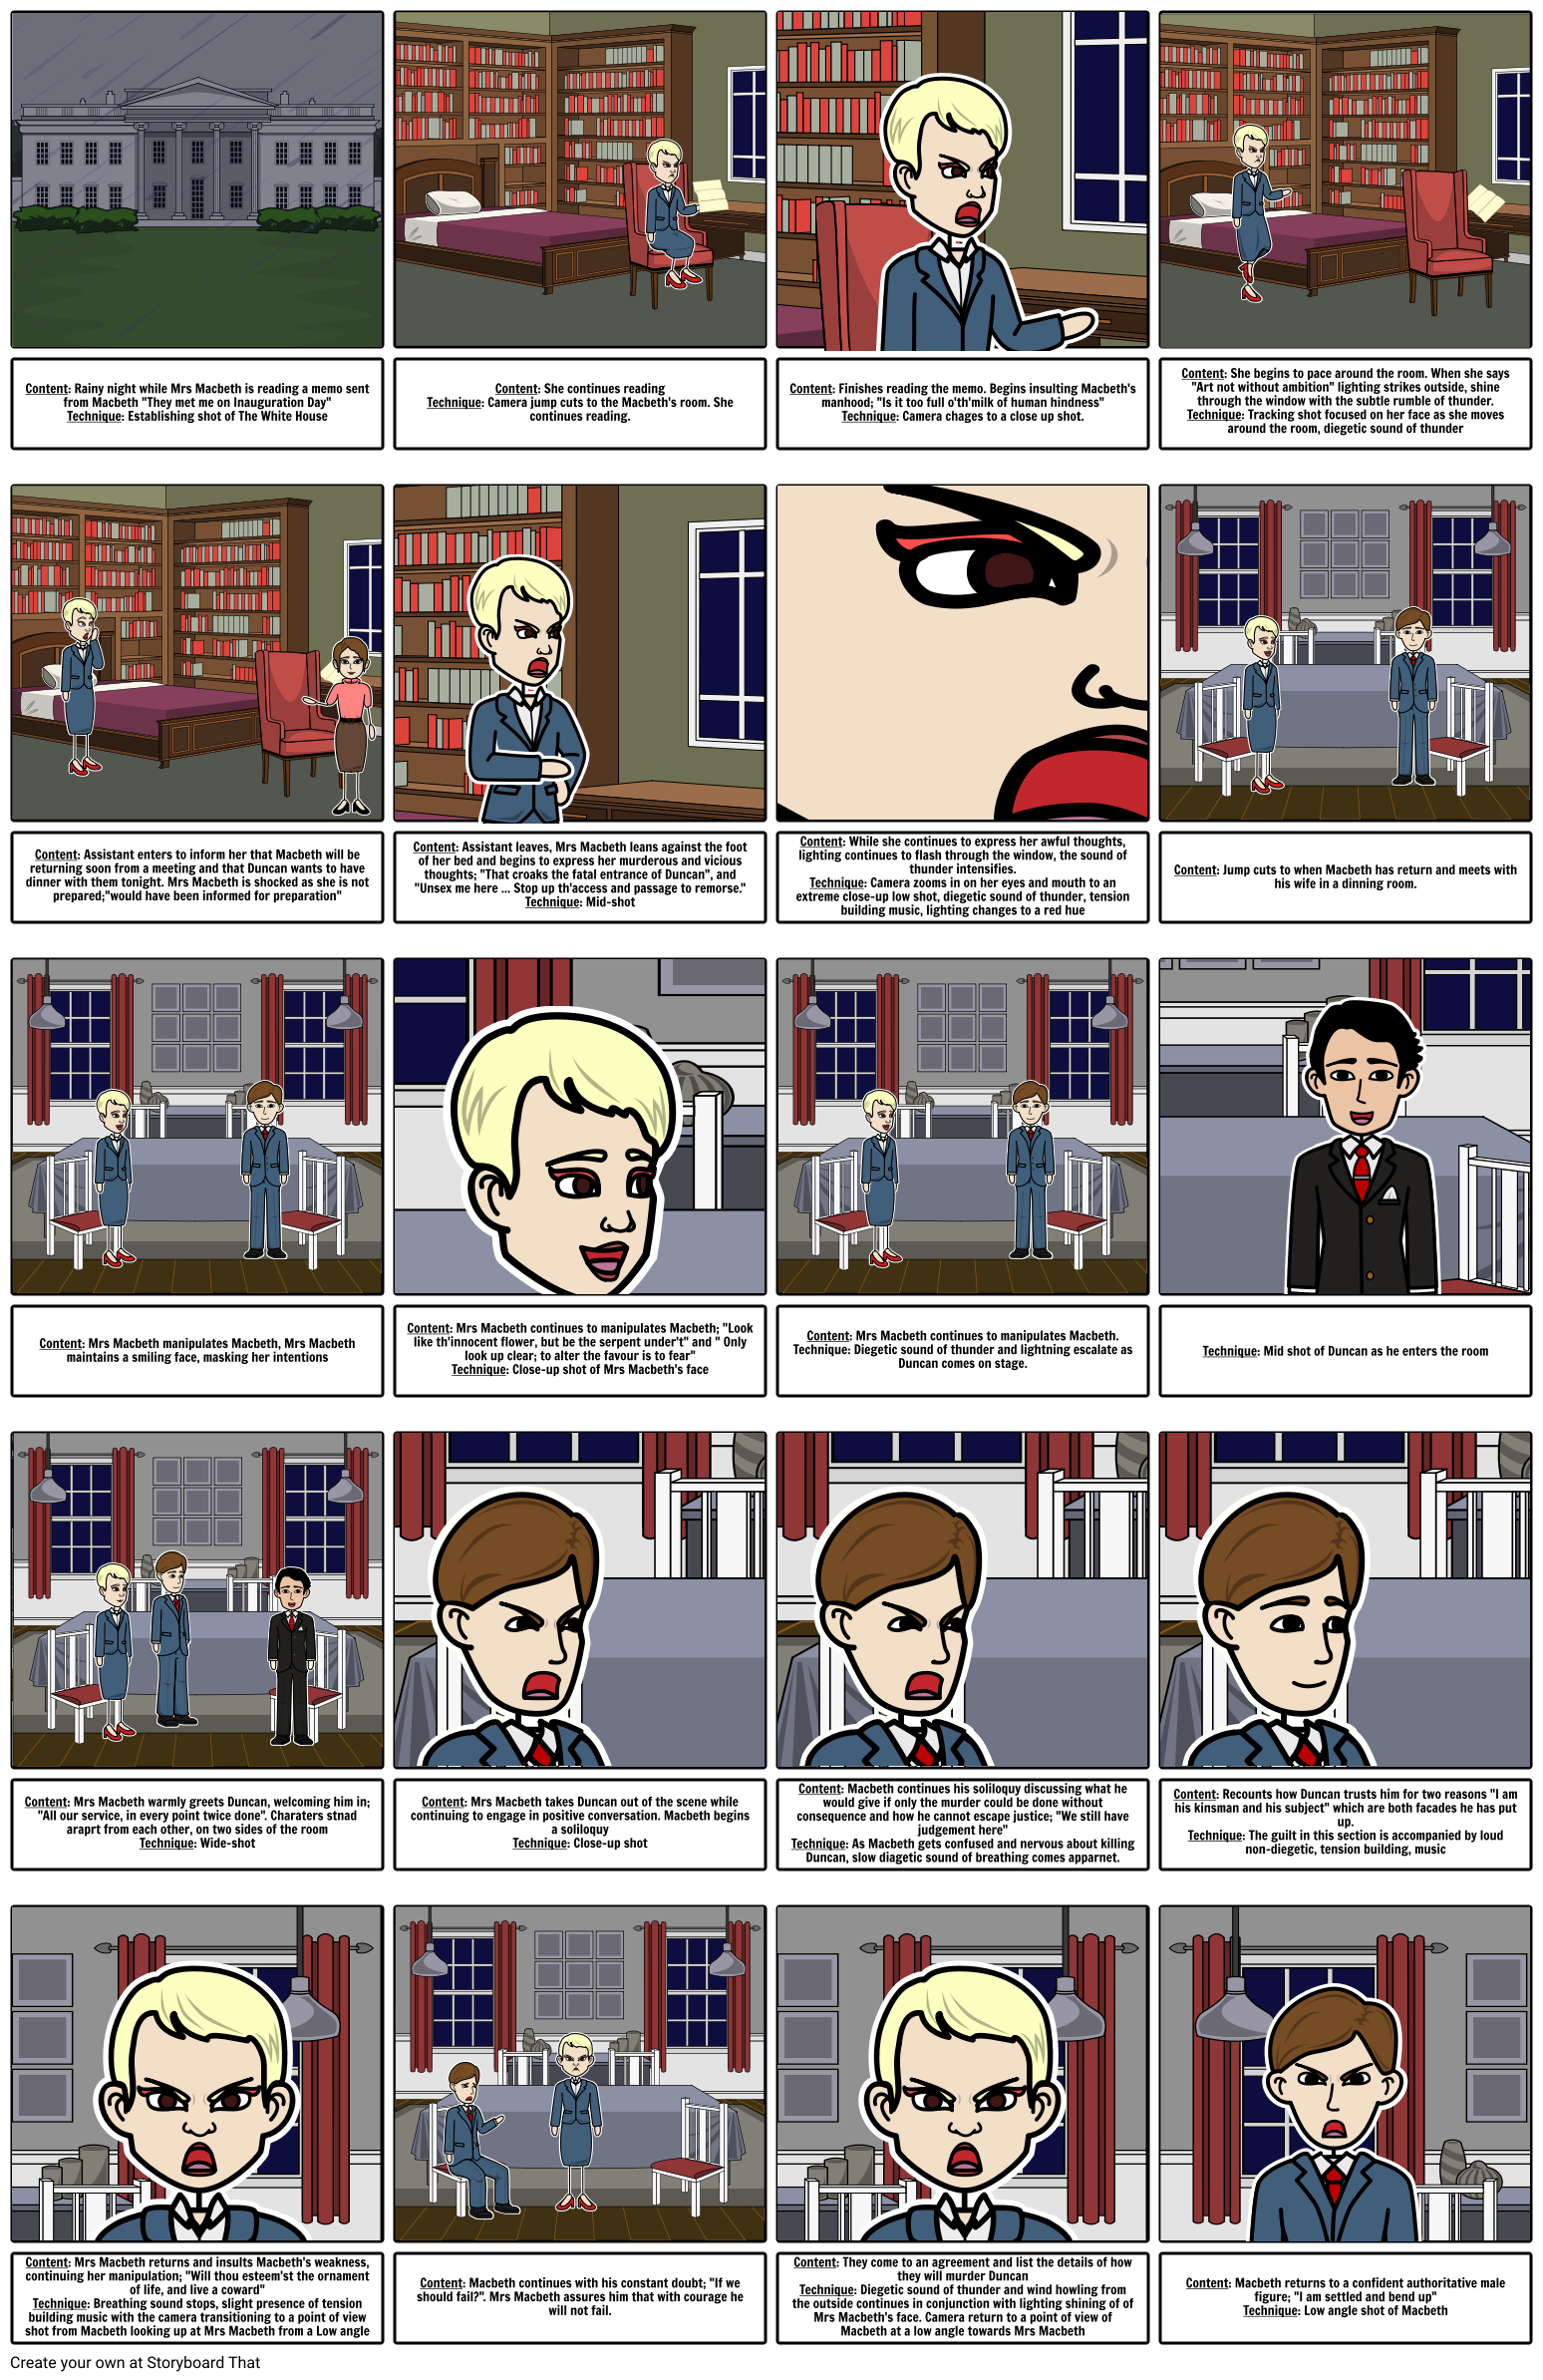 English Act 1 Scene 5 Story Board